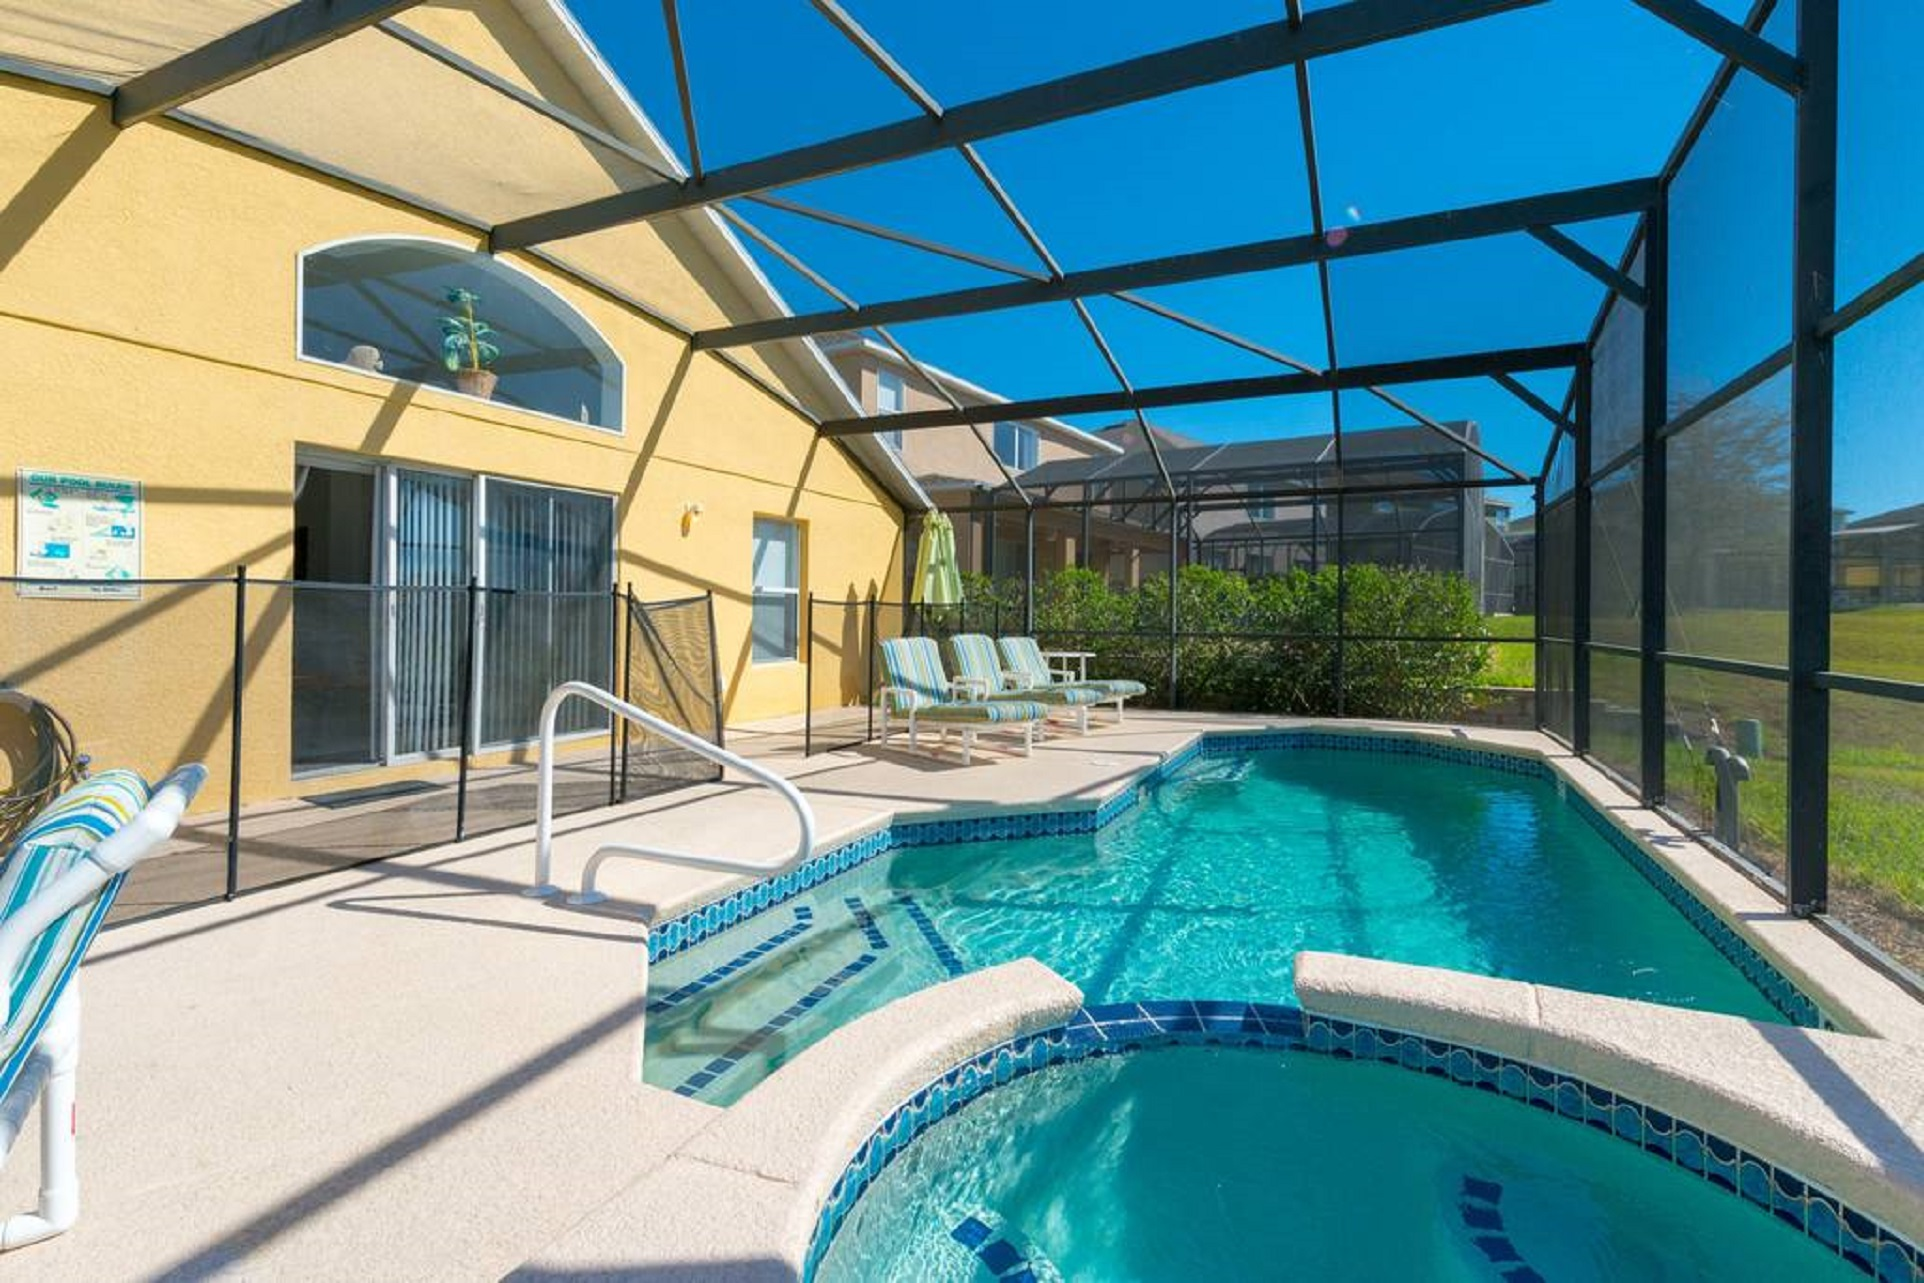 Disabled Friendly Pool Home-122949